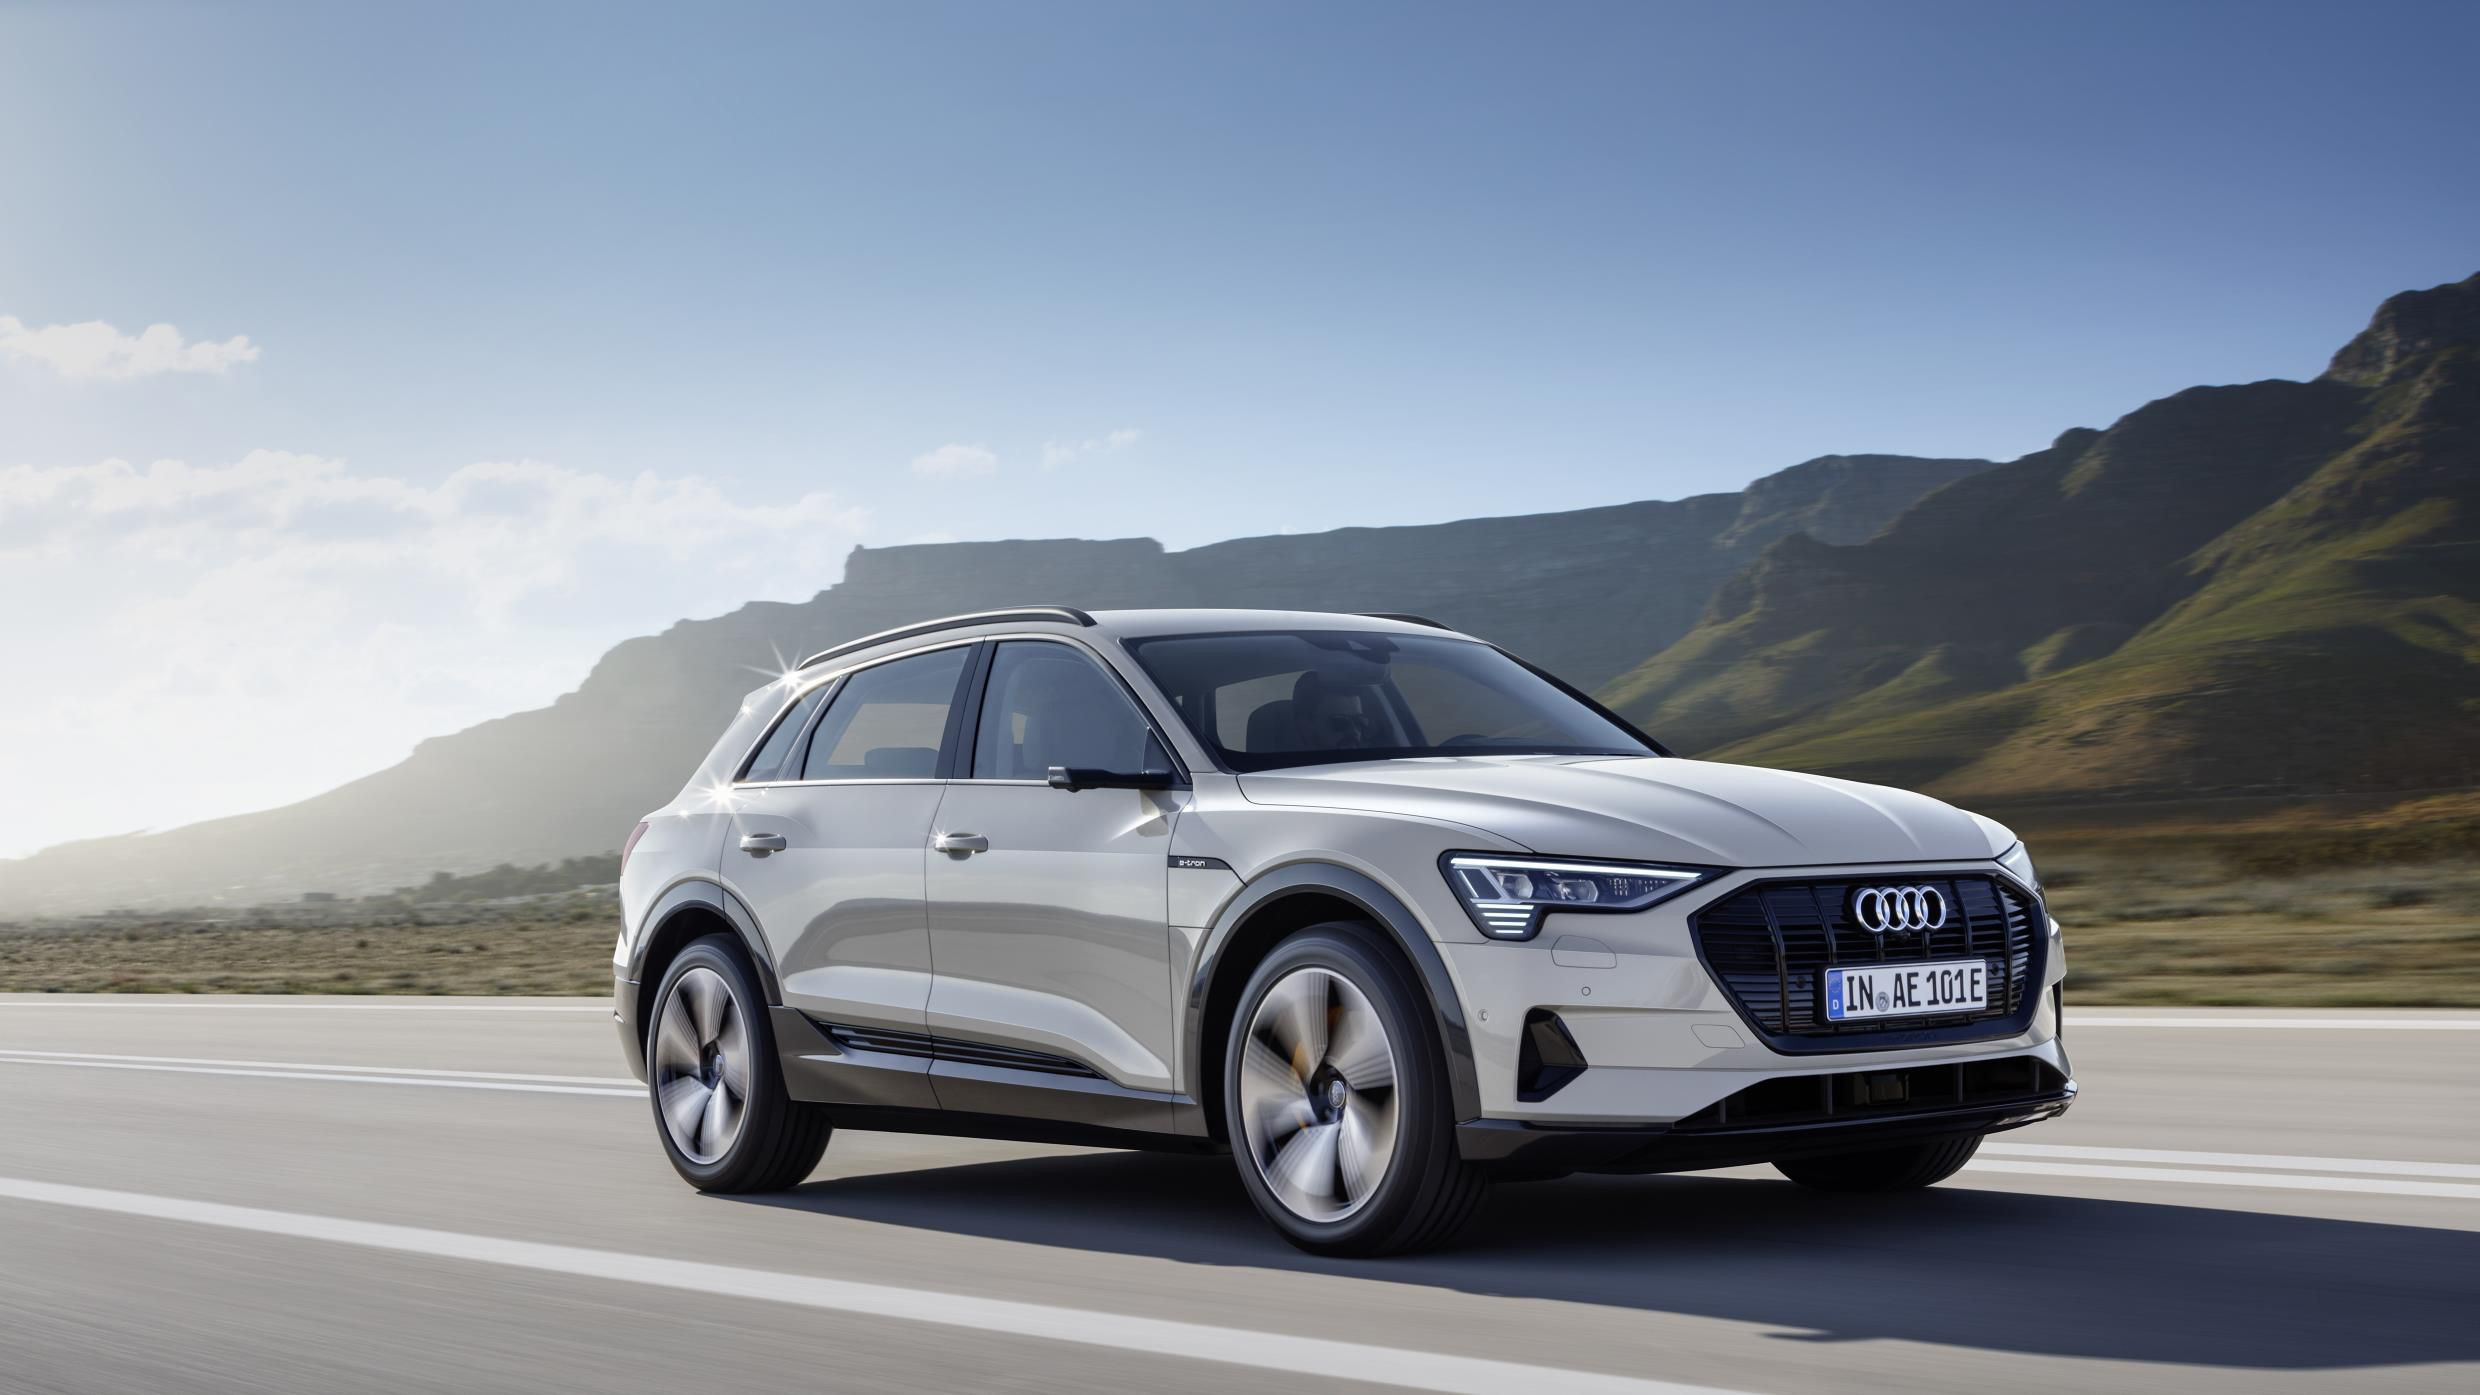 Silver Audi e-tron whizzing along a sunny road